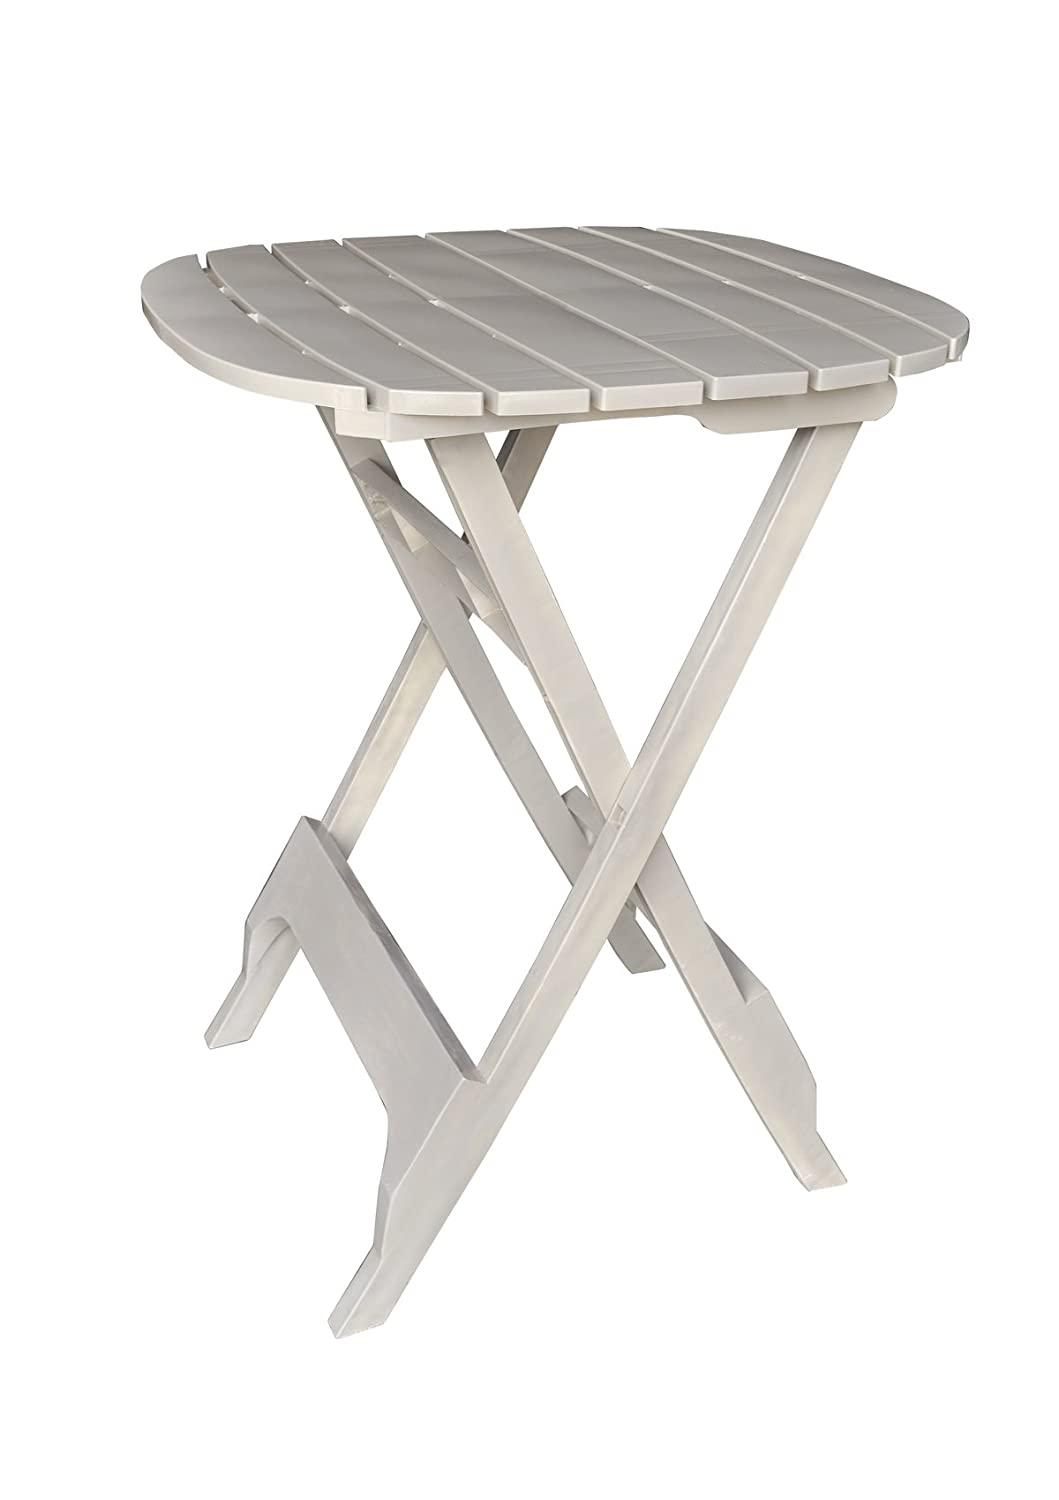 Adams Manufacturing 8560-48-3701 Quik-Fold Bistro Table, 40-Inch, White